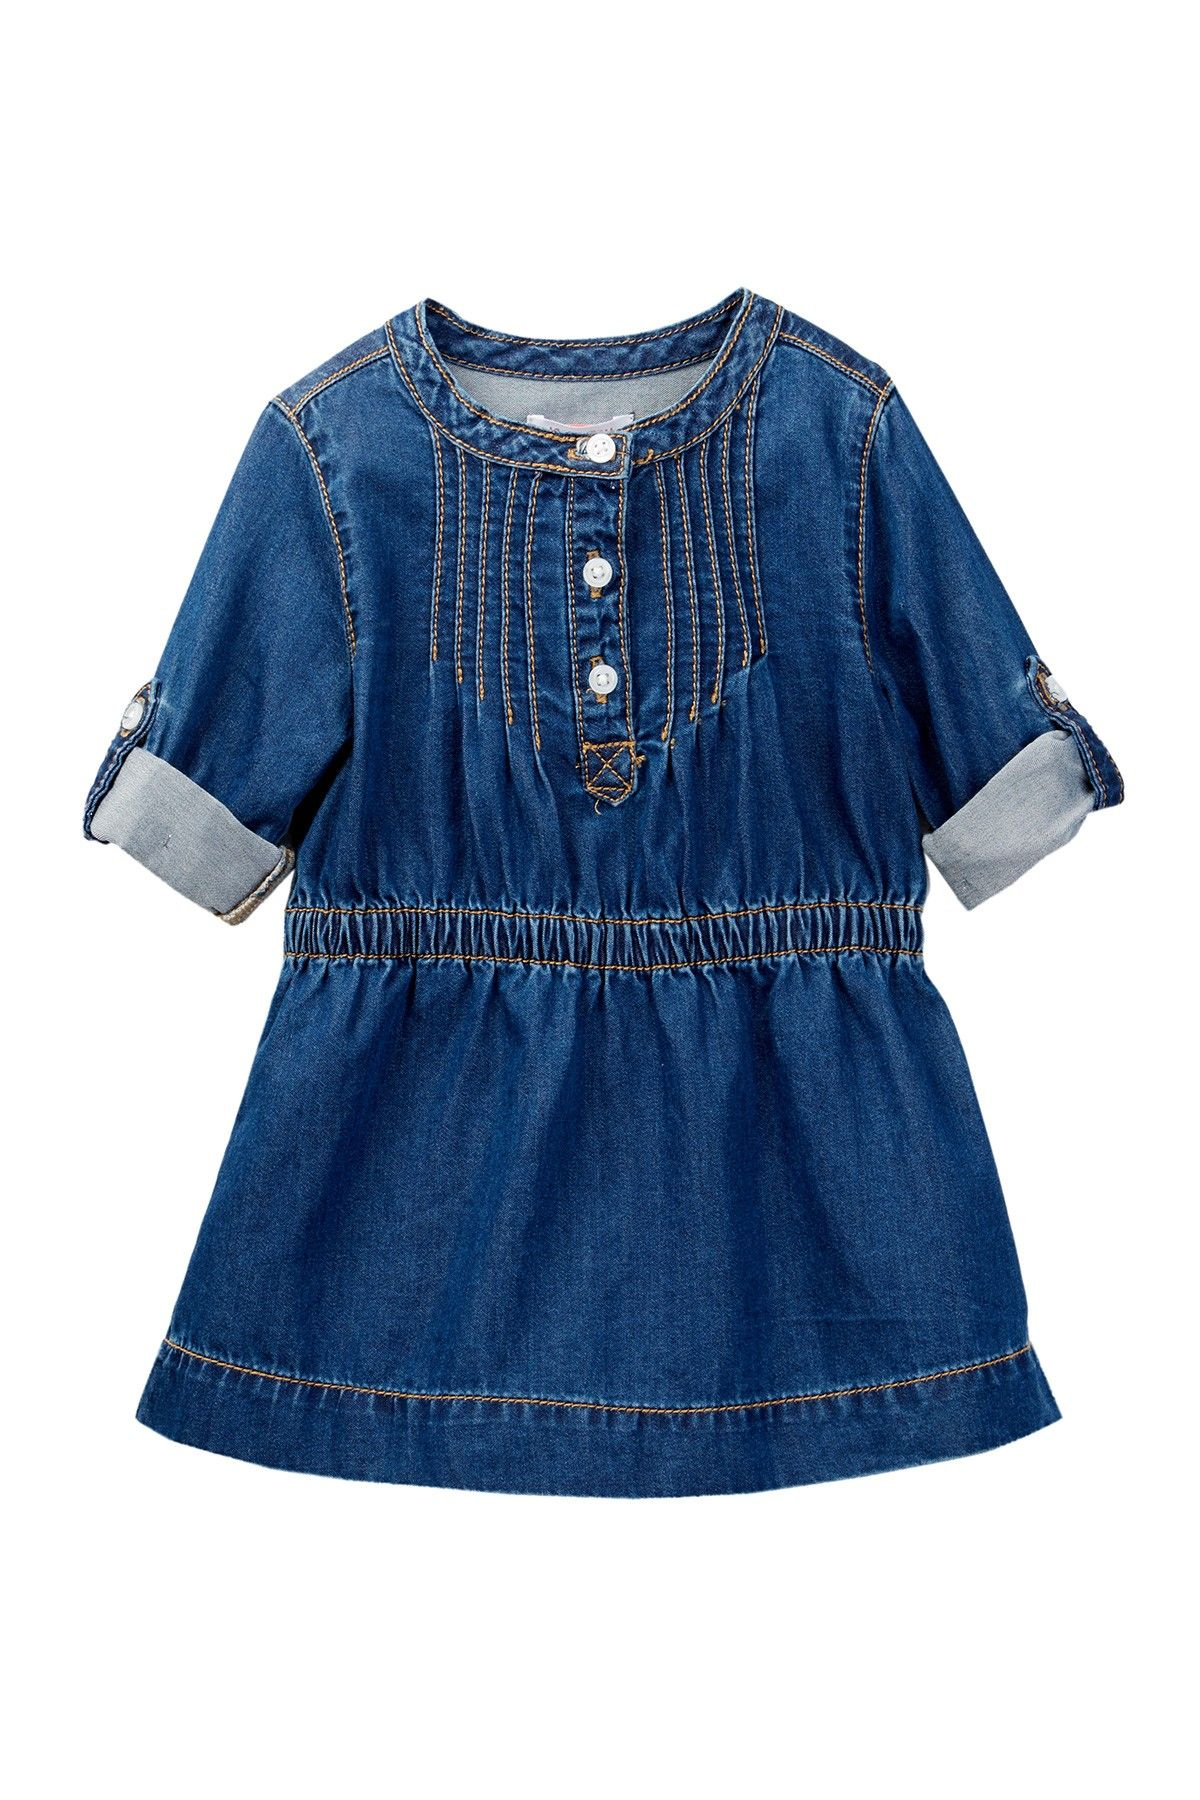 Denim Dress Baby Girls 12 24M by Joe Fresh on nordstrom rack